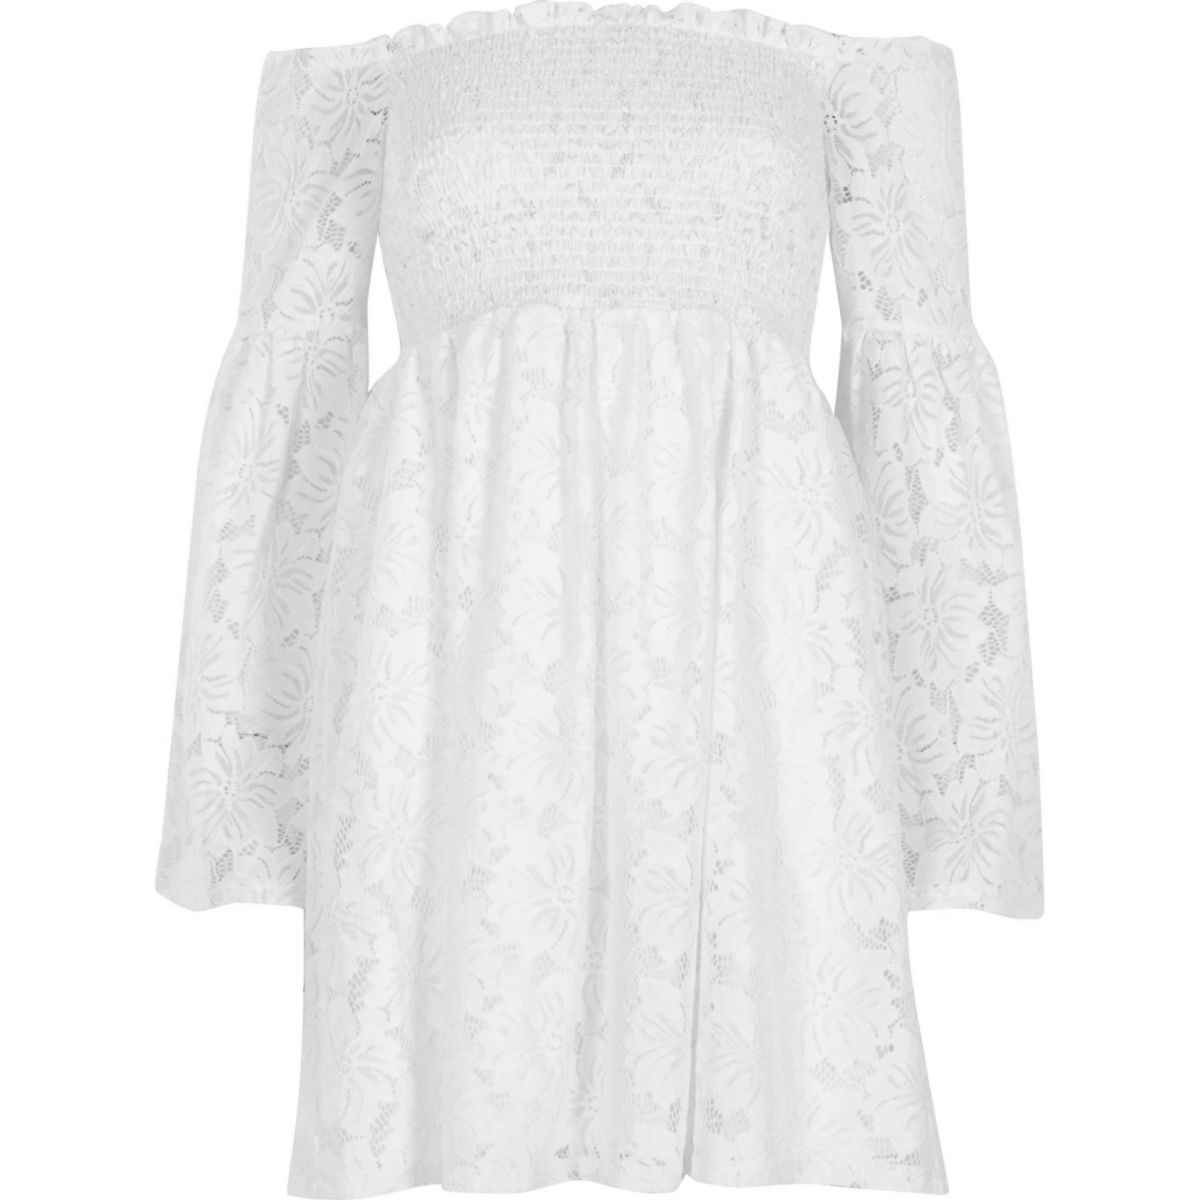 White lace shirred bardot bell sleeve dress